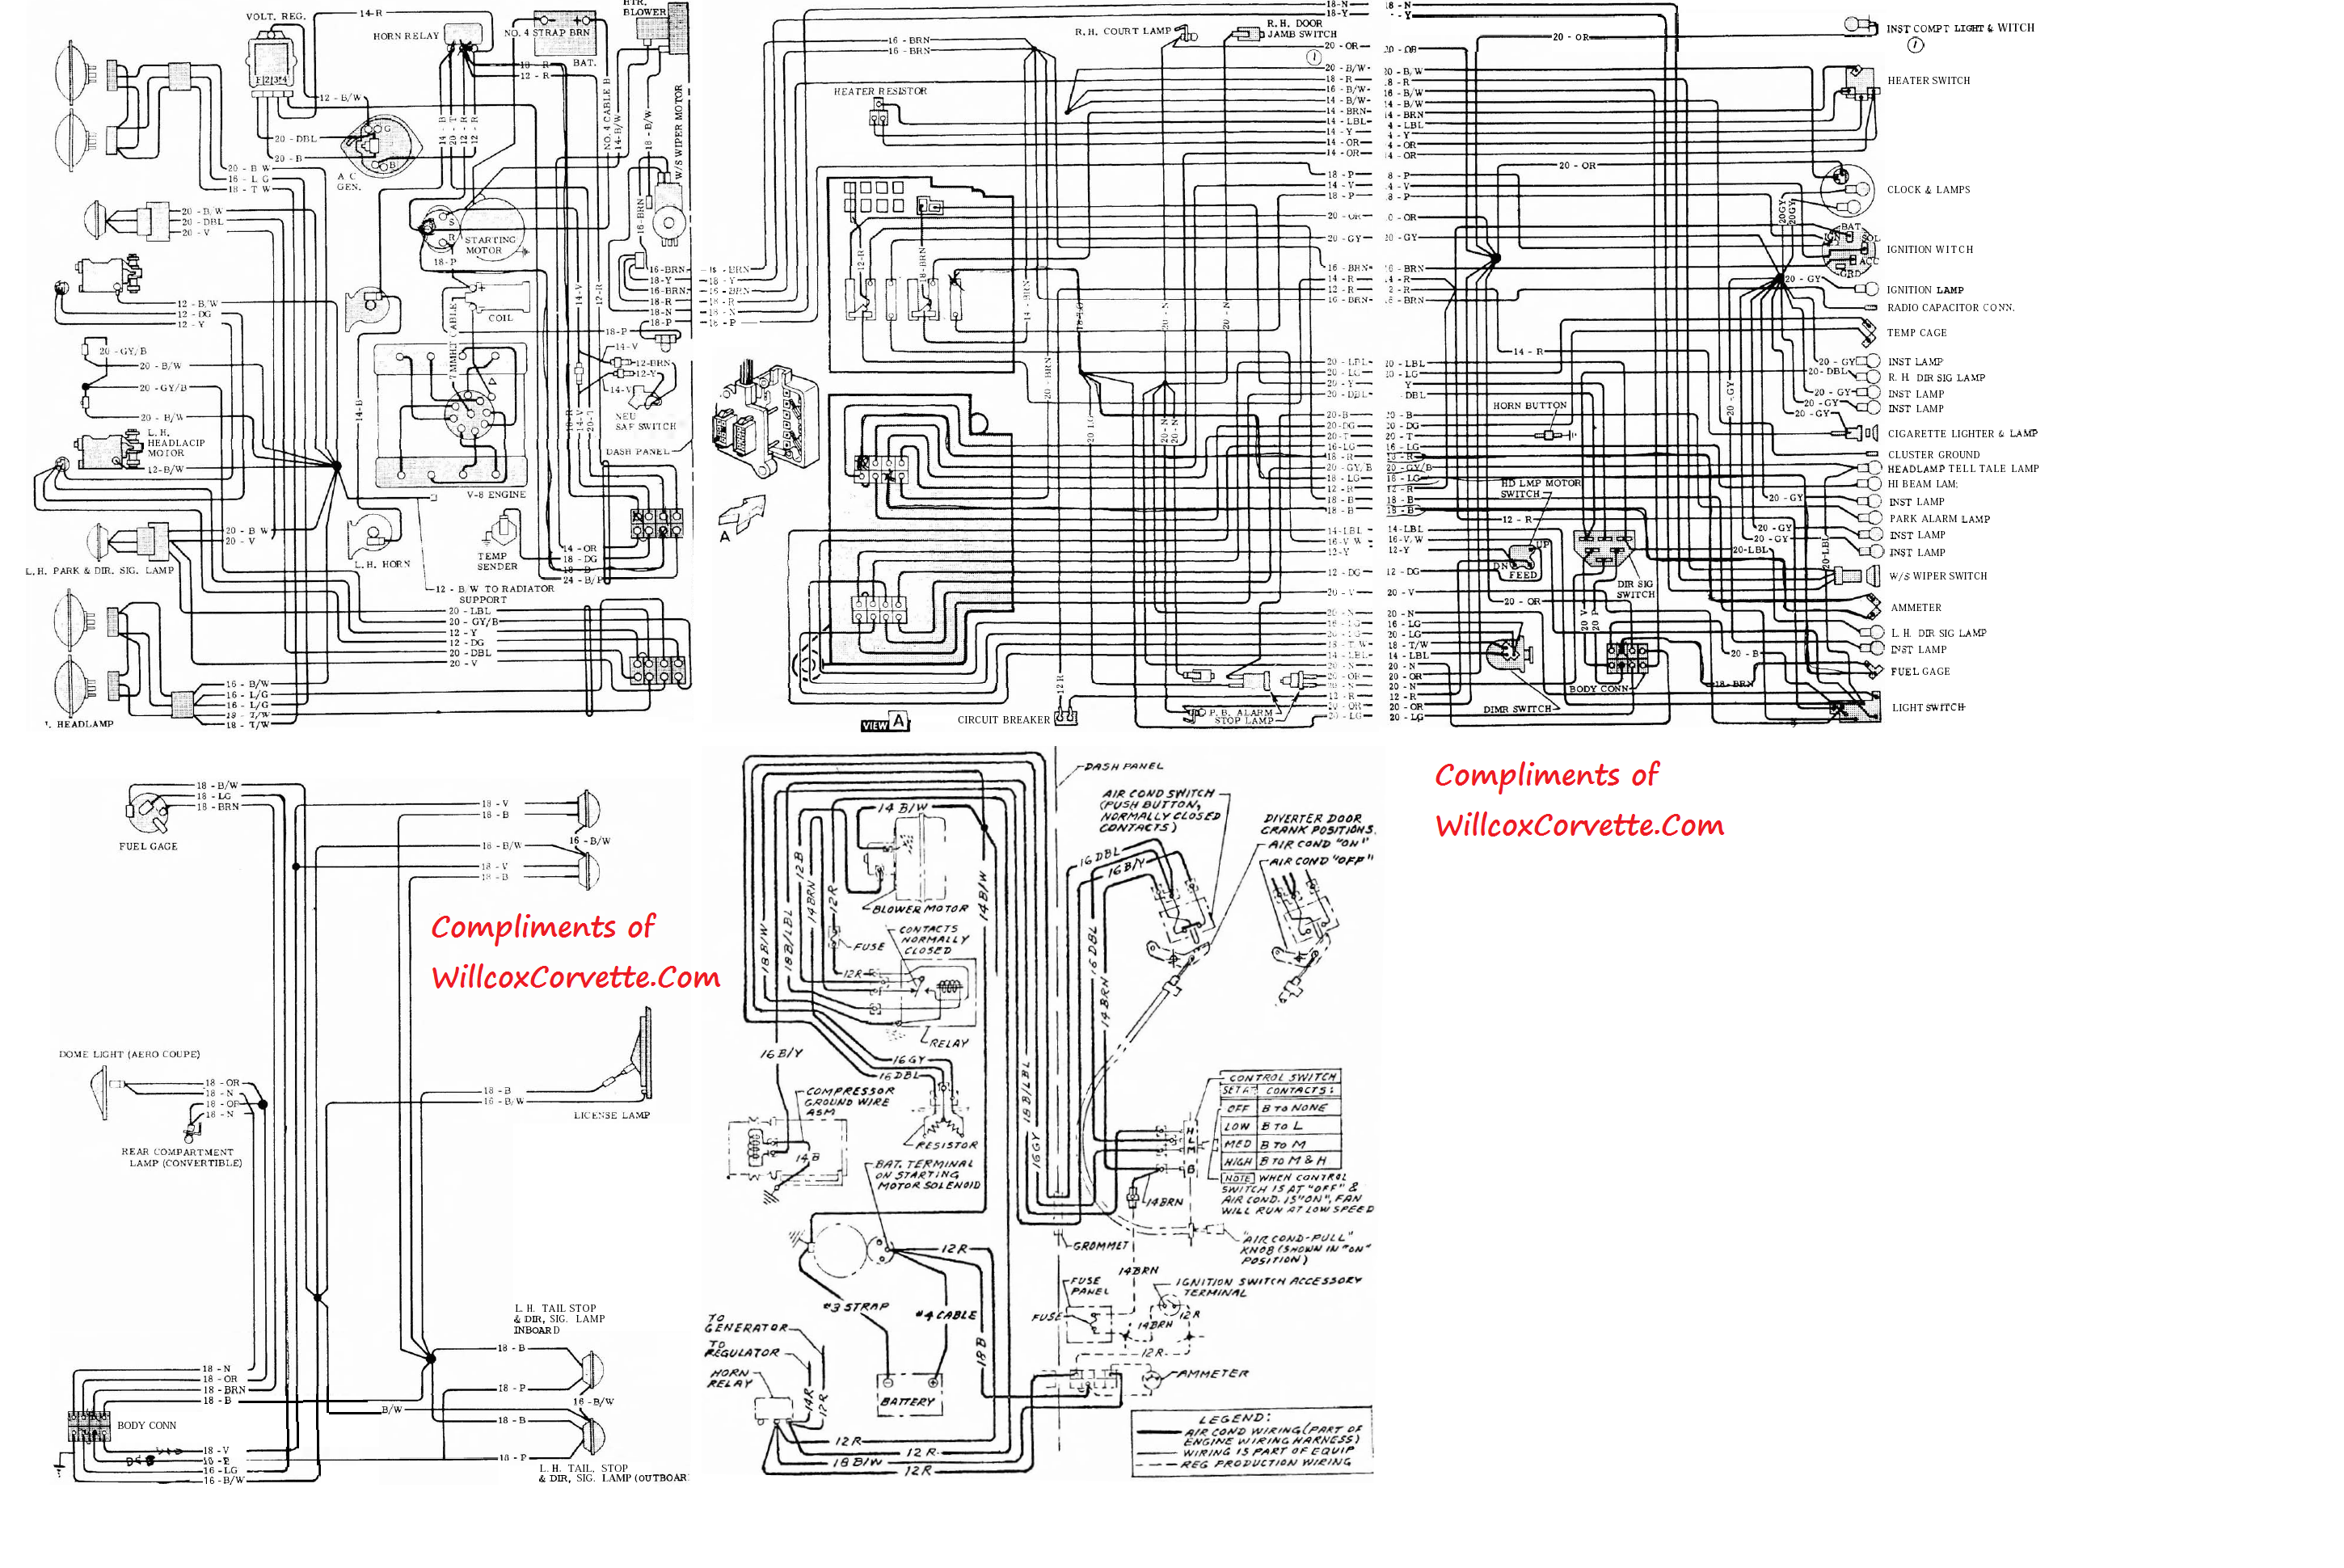 1963 Corvette Tracer Wiring Diagram Tracer Schematic 1963 corvette tracer wiring diagram tracer schematic willcox 1980 corvette wiring diagram at mifinder.co